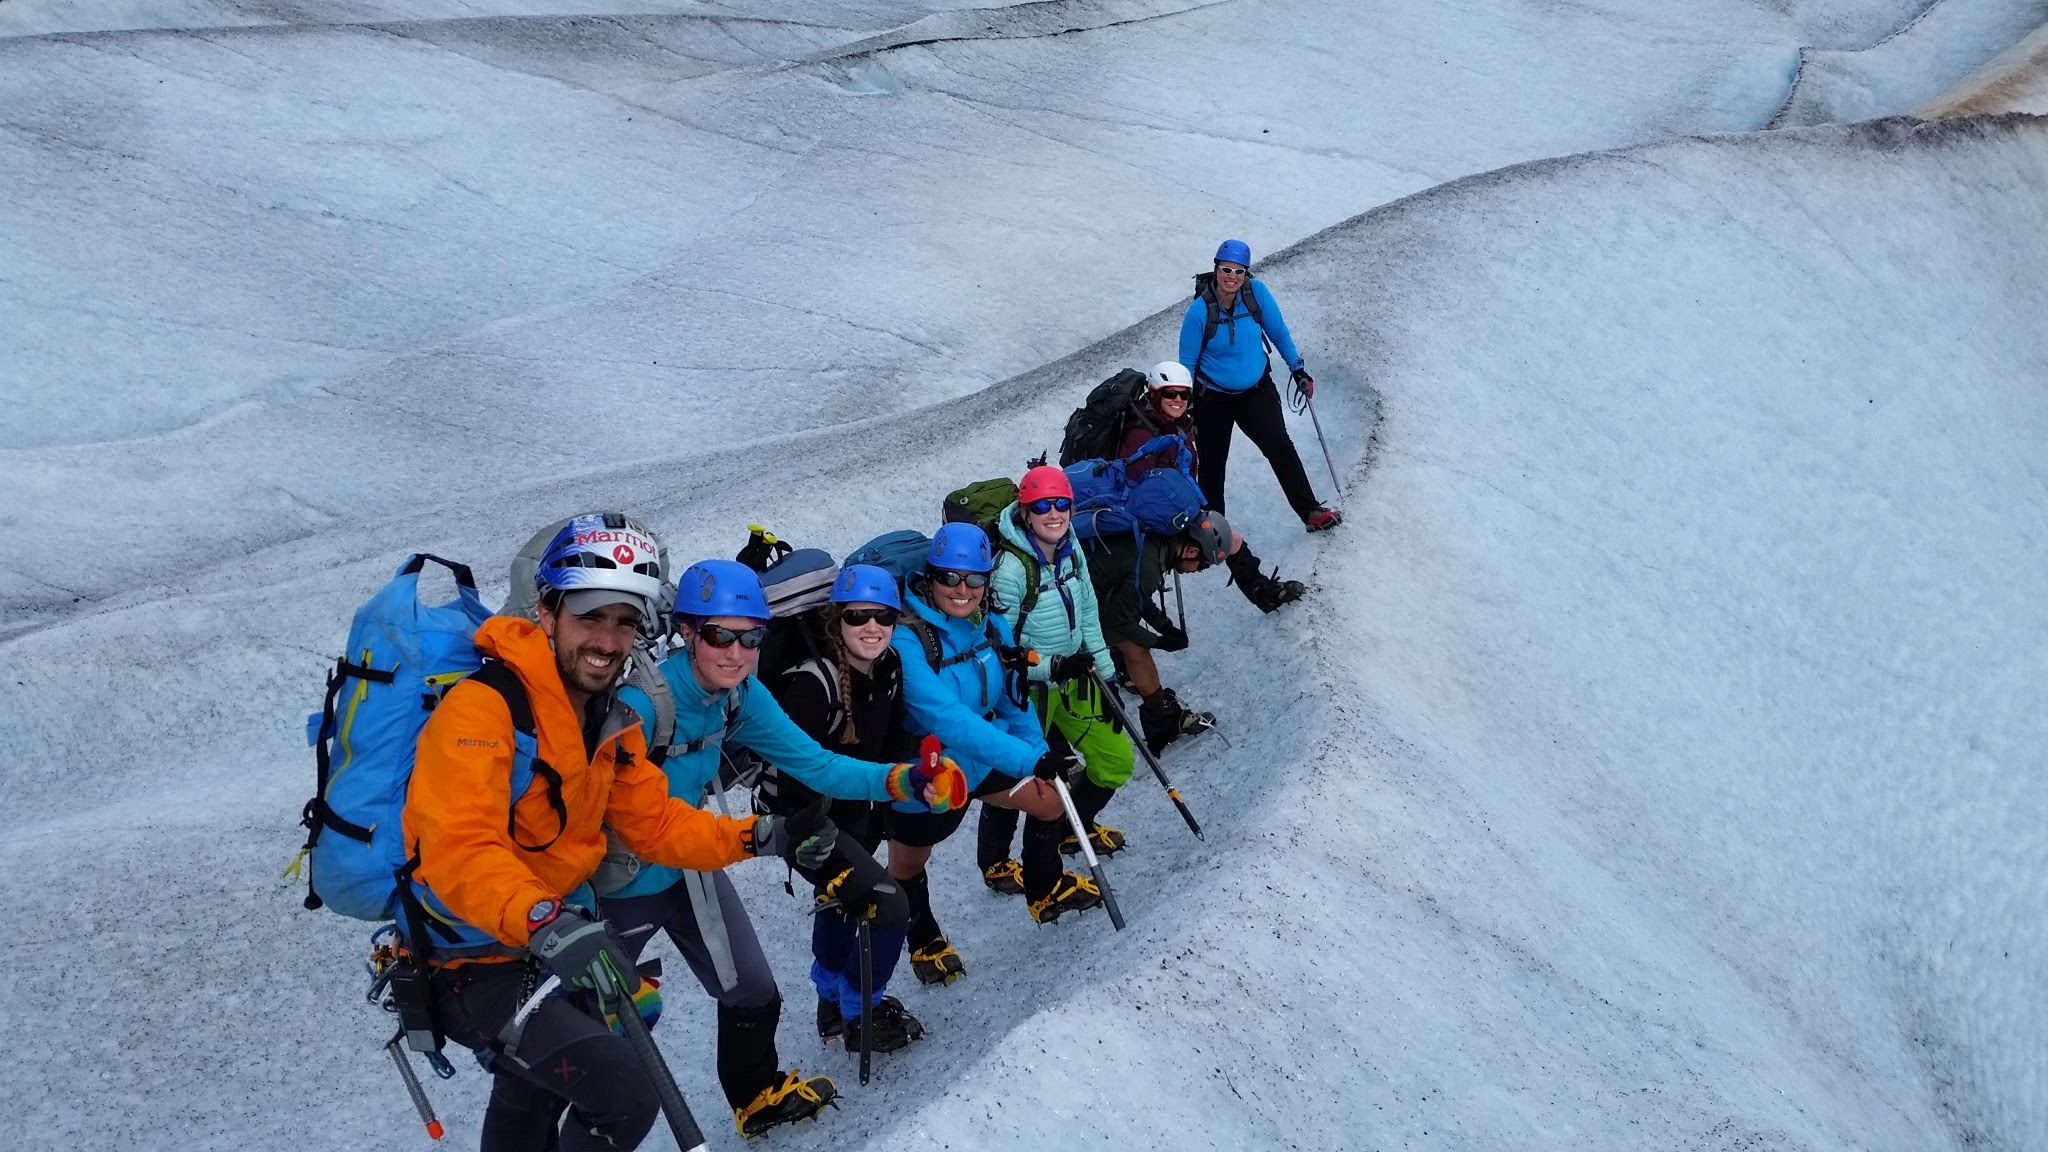 Safety Manager (Ibai Rico, at left) and Executive Director (Erin Whitney, at right) lead crampon practice on the lower Mendenhall Glacier. JIRP 2016. Photo: G. Weary.